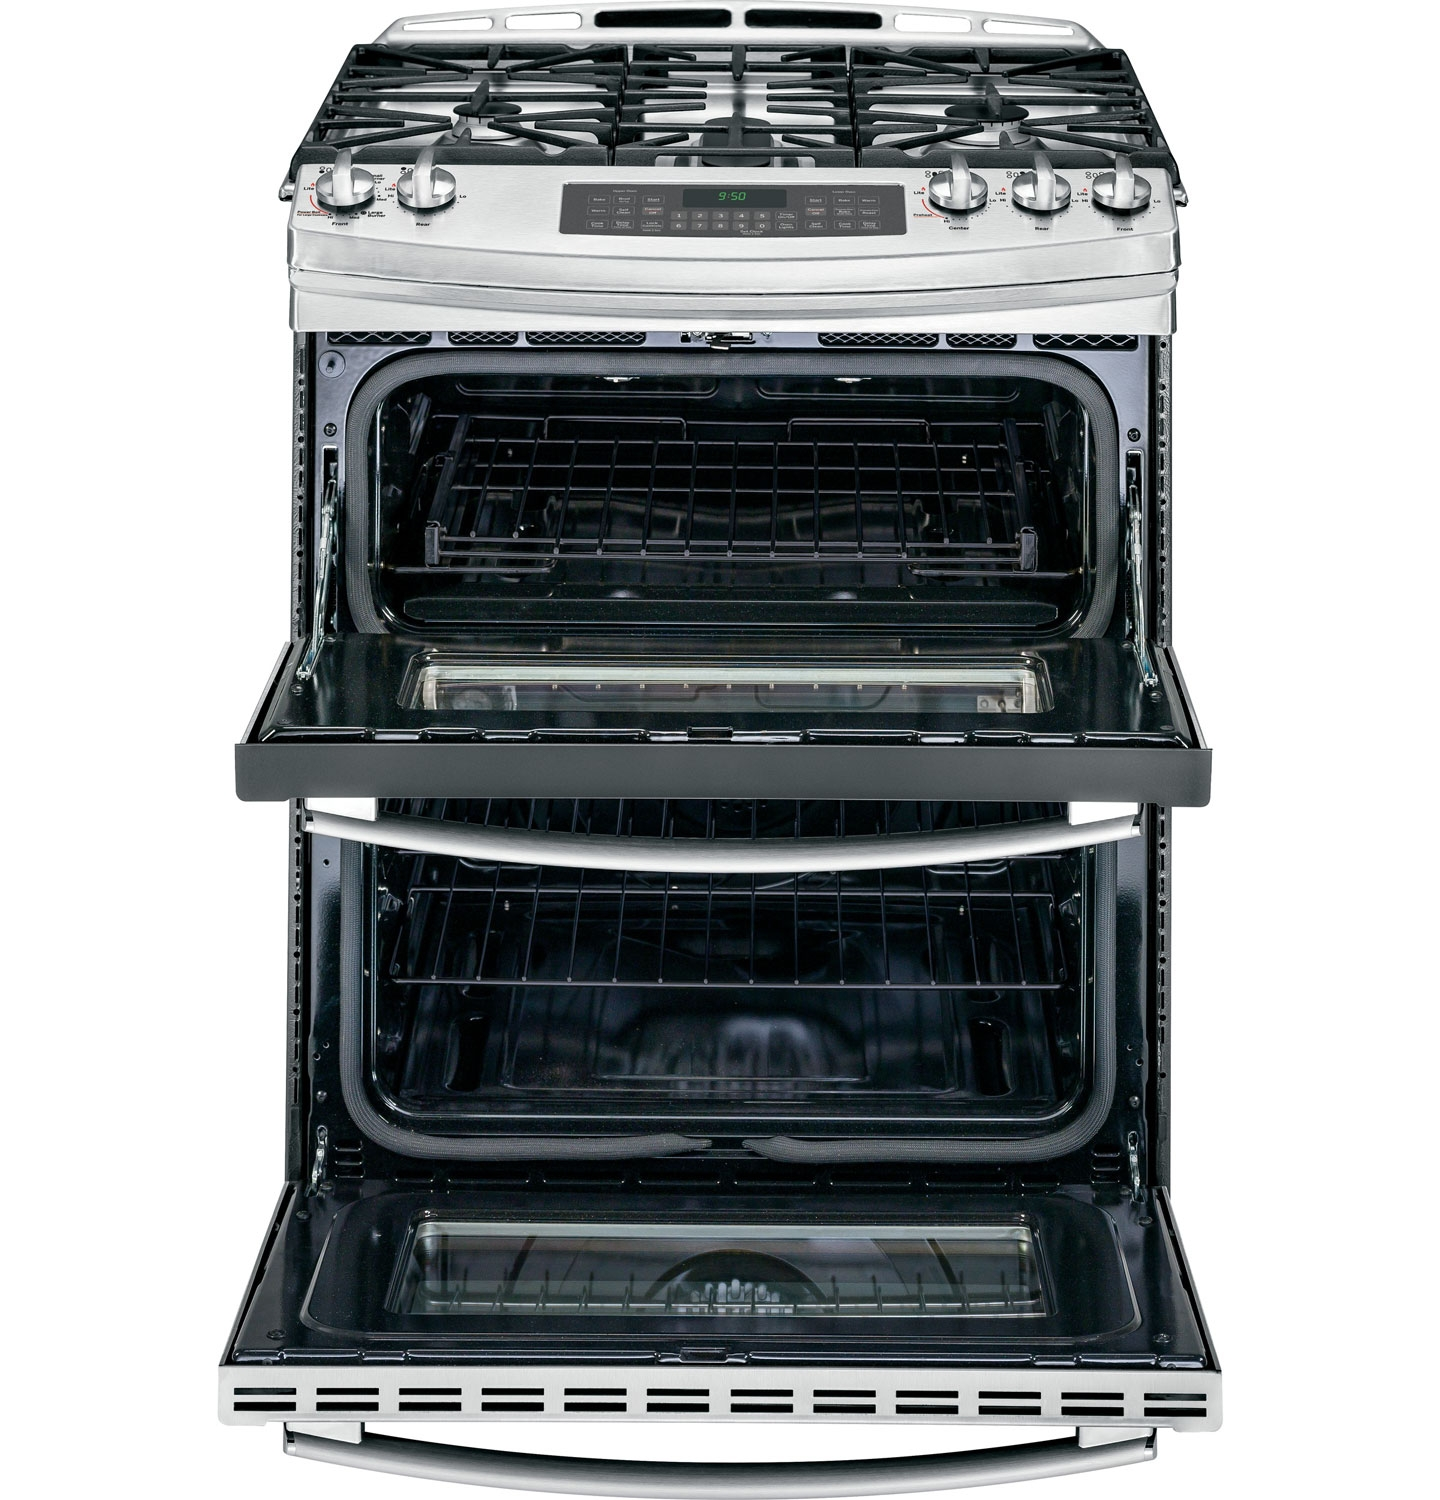 Ge 30 Stainless Double Oven Gas Range Pgs950sefss